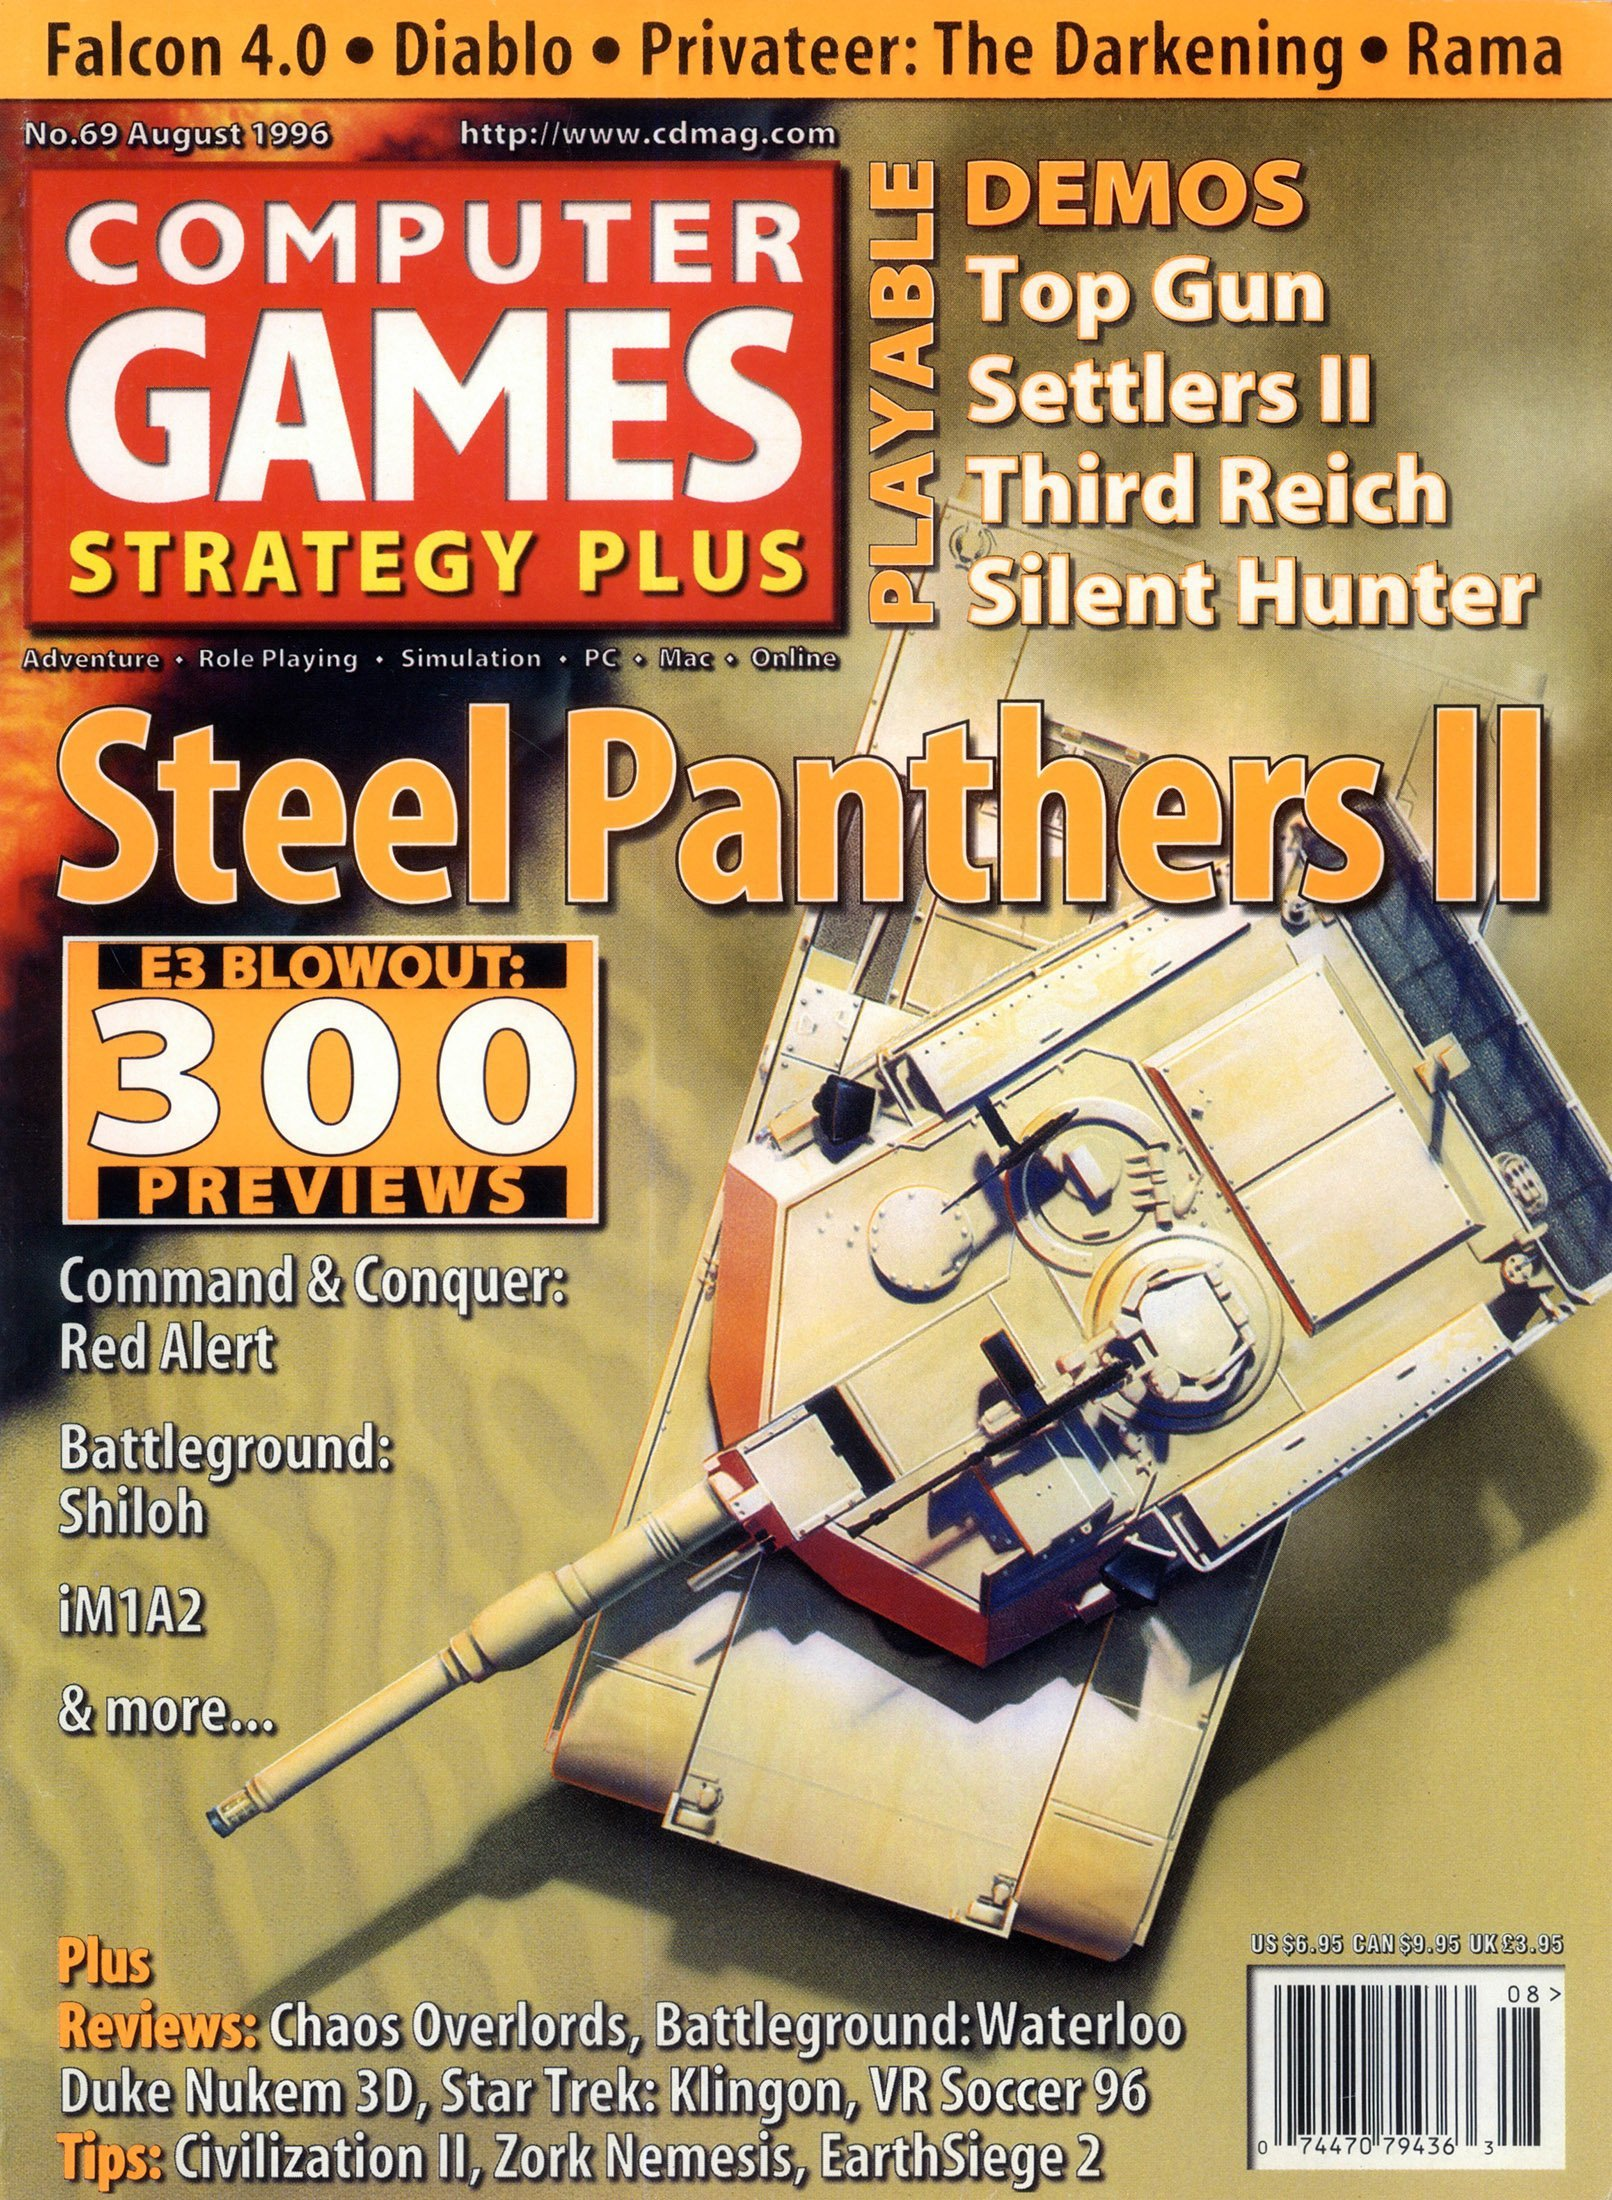 Computer Games Strategy Plus Issue 069 (August 1996)